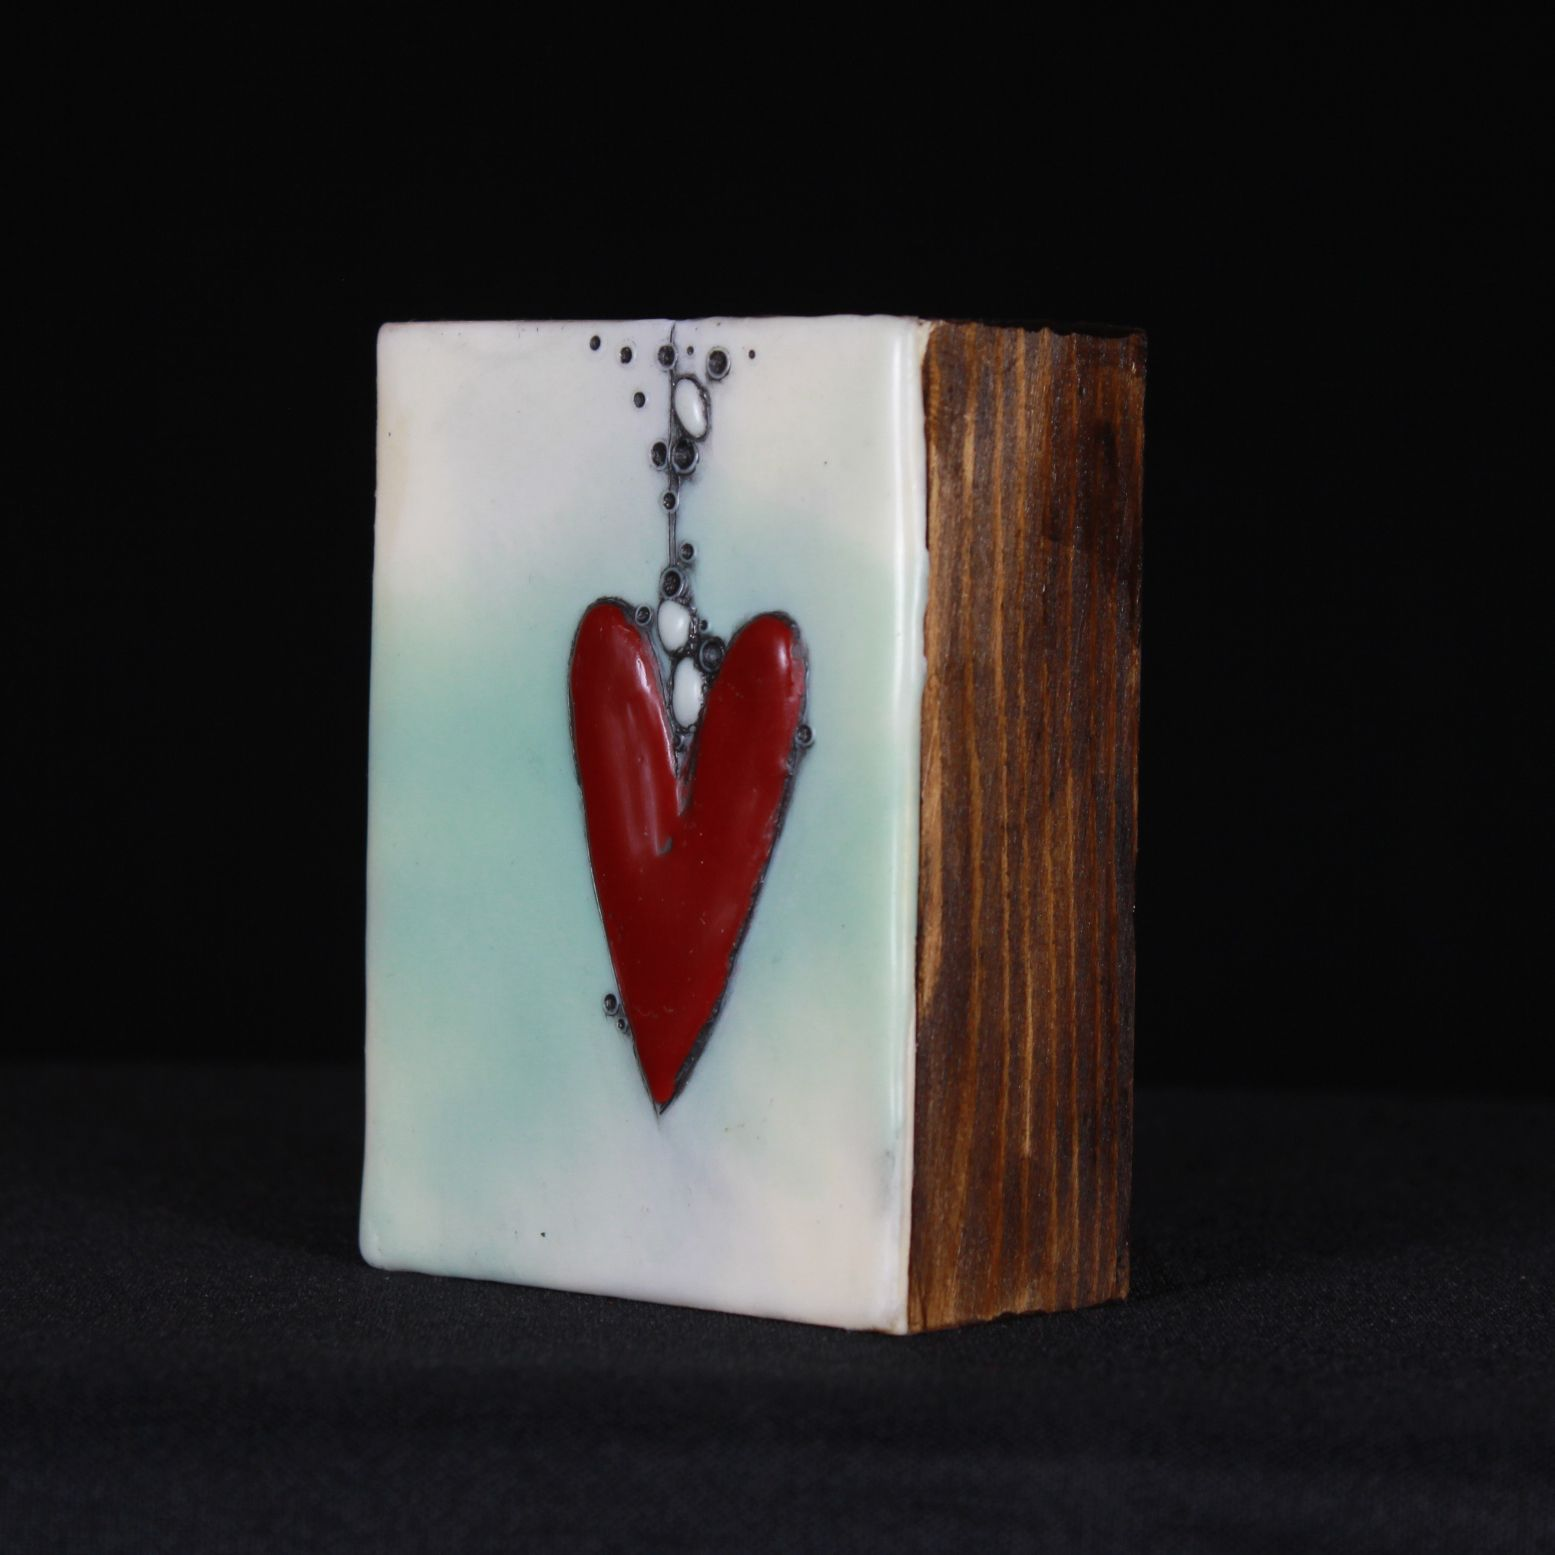 Dangling Red Heart with Misty White